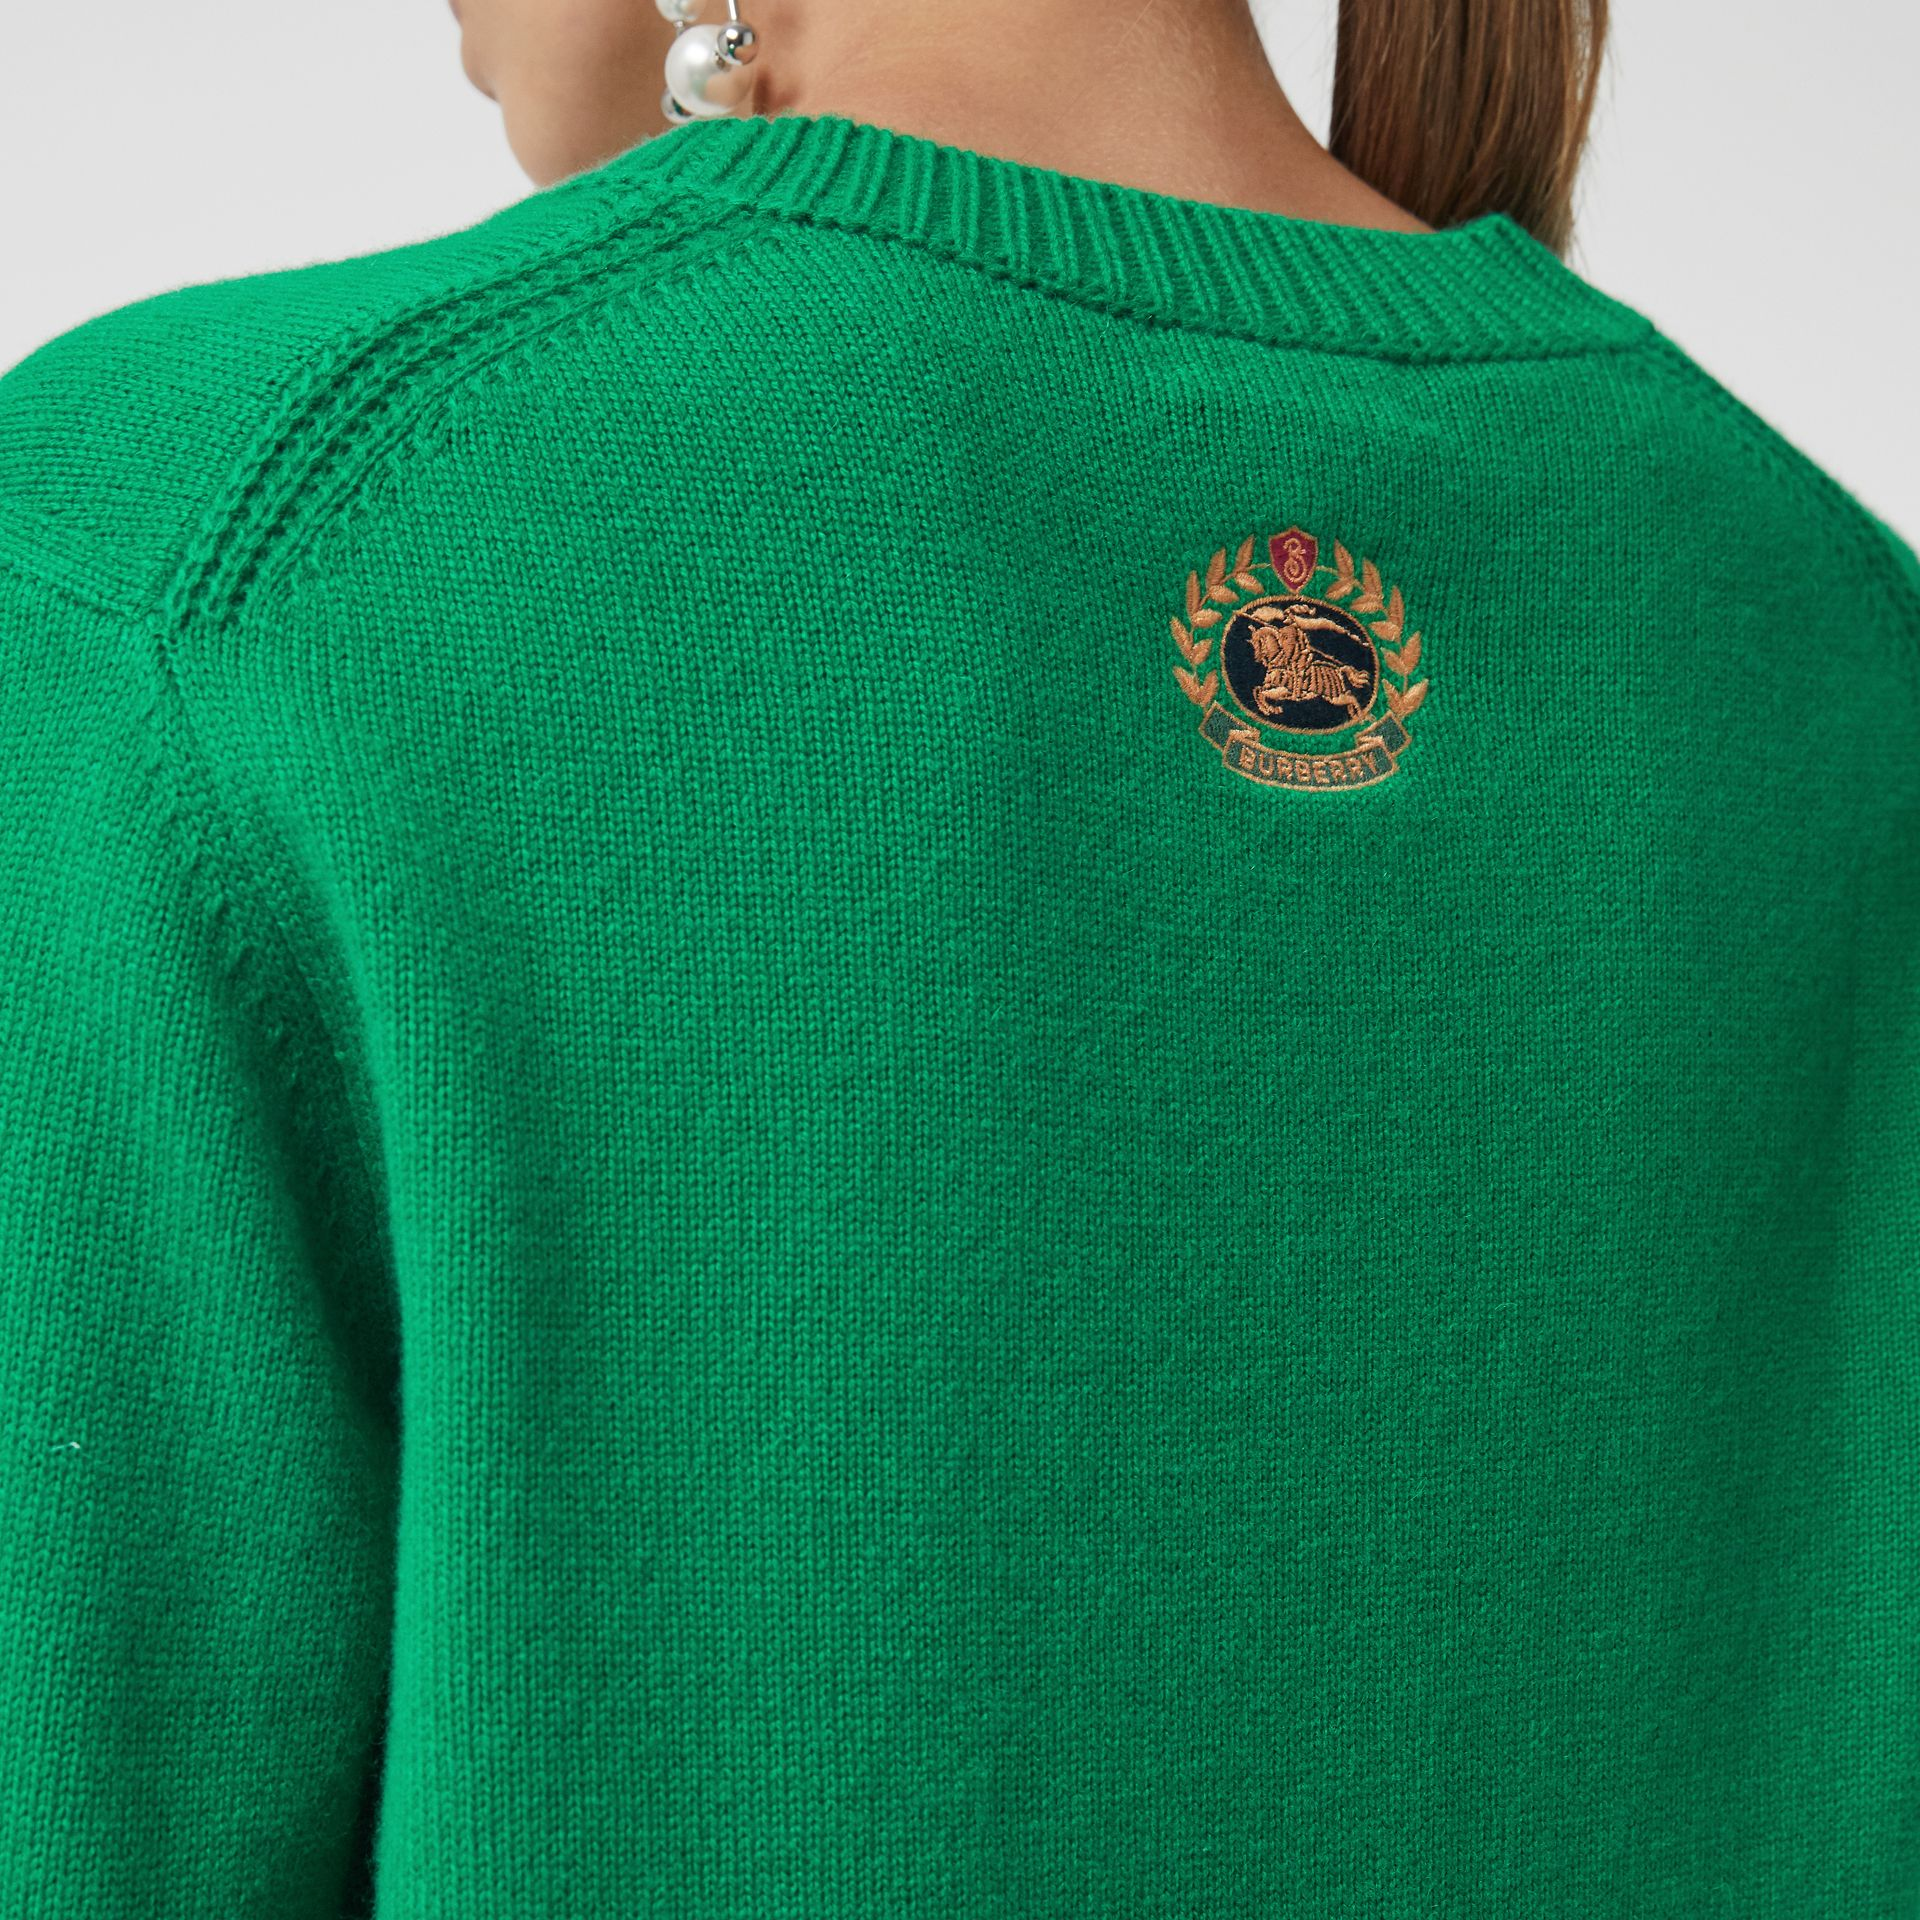 Archive Logo Appliqué Cashmere Sweater in Vibrant Green - Women | Burberry Singapore - gallery image 1